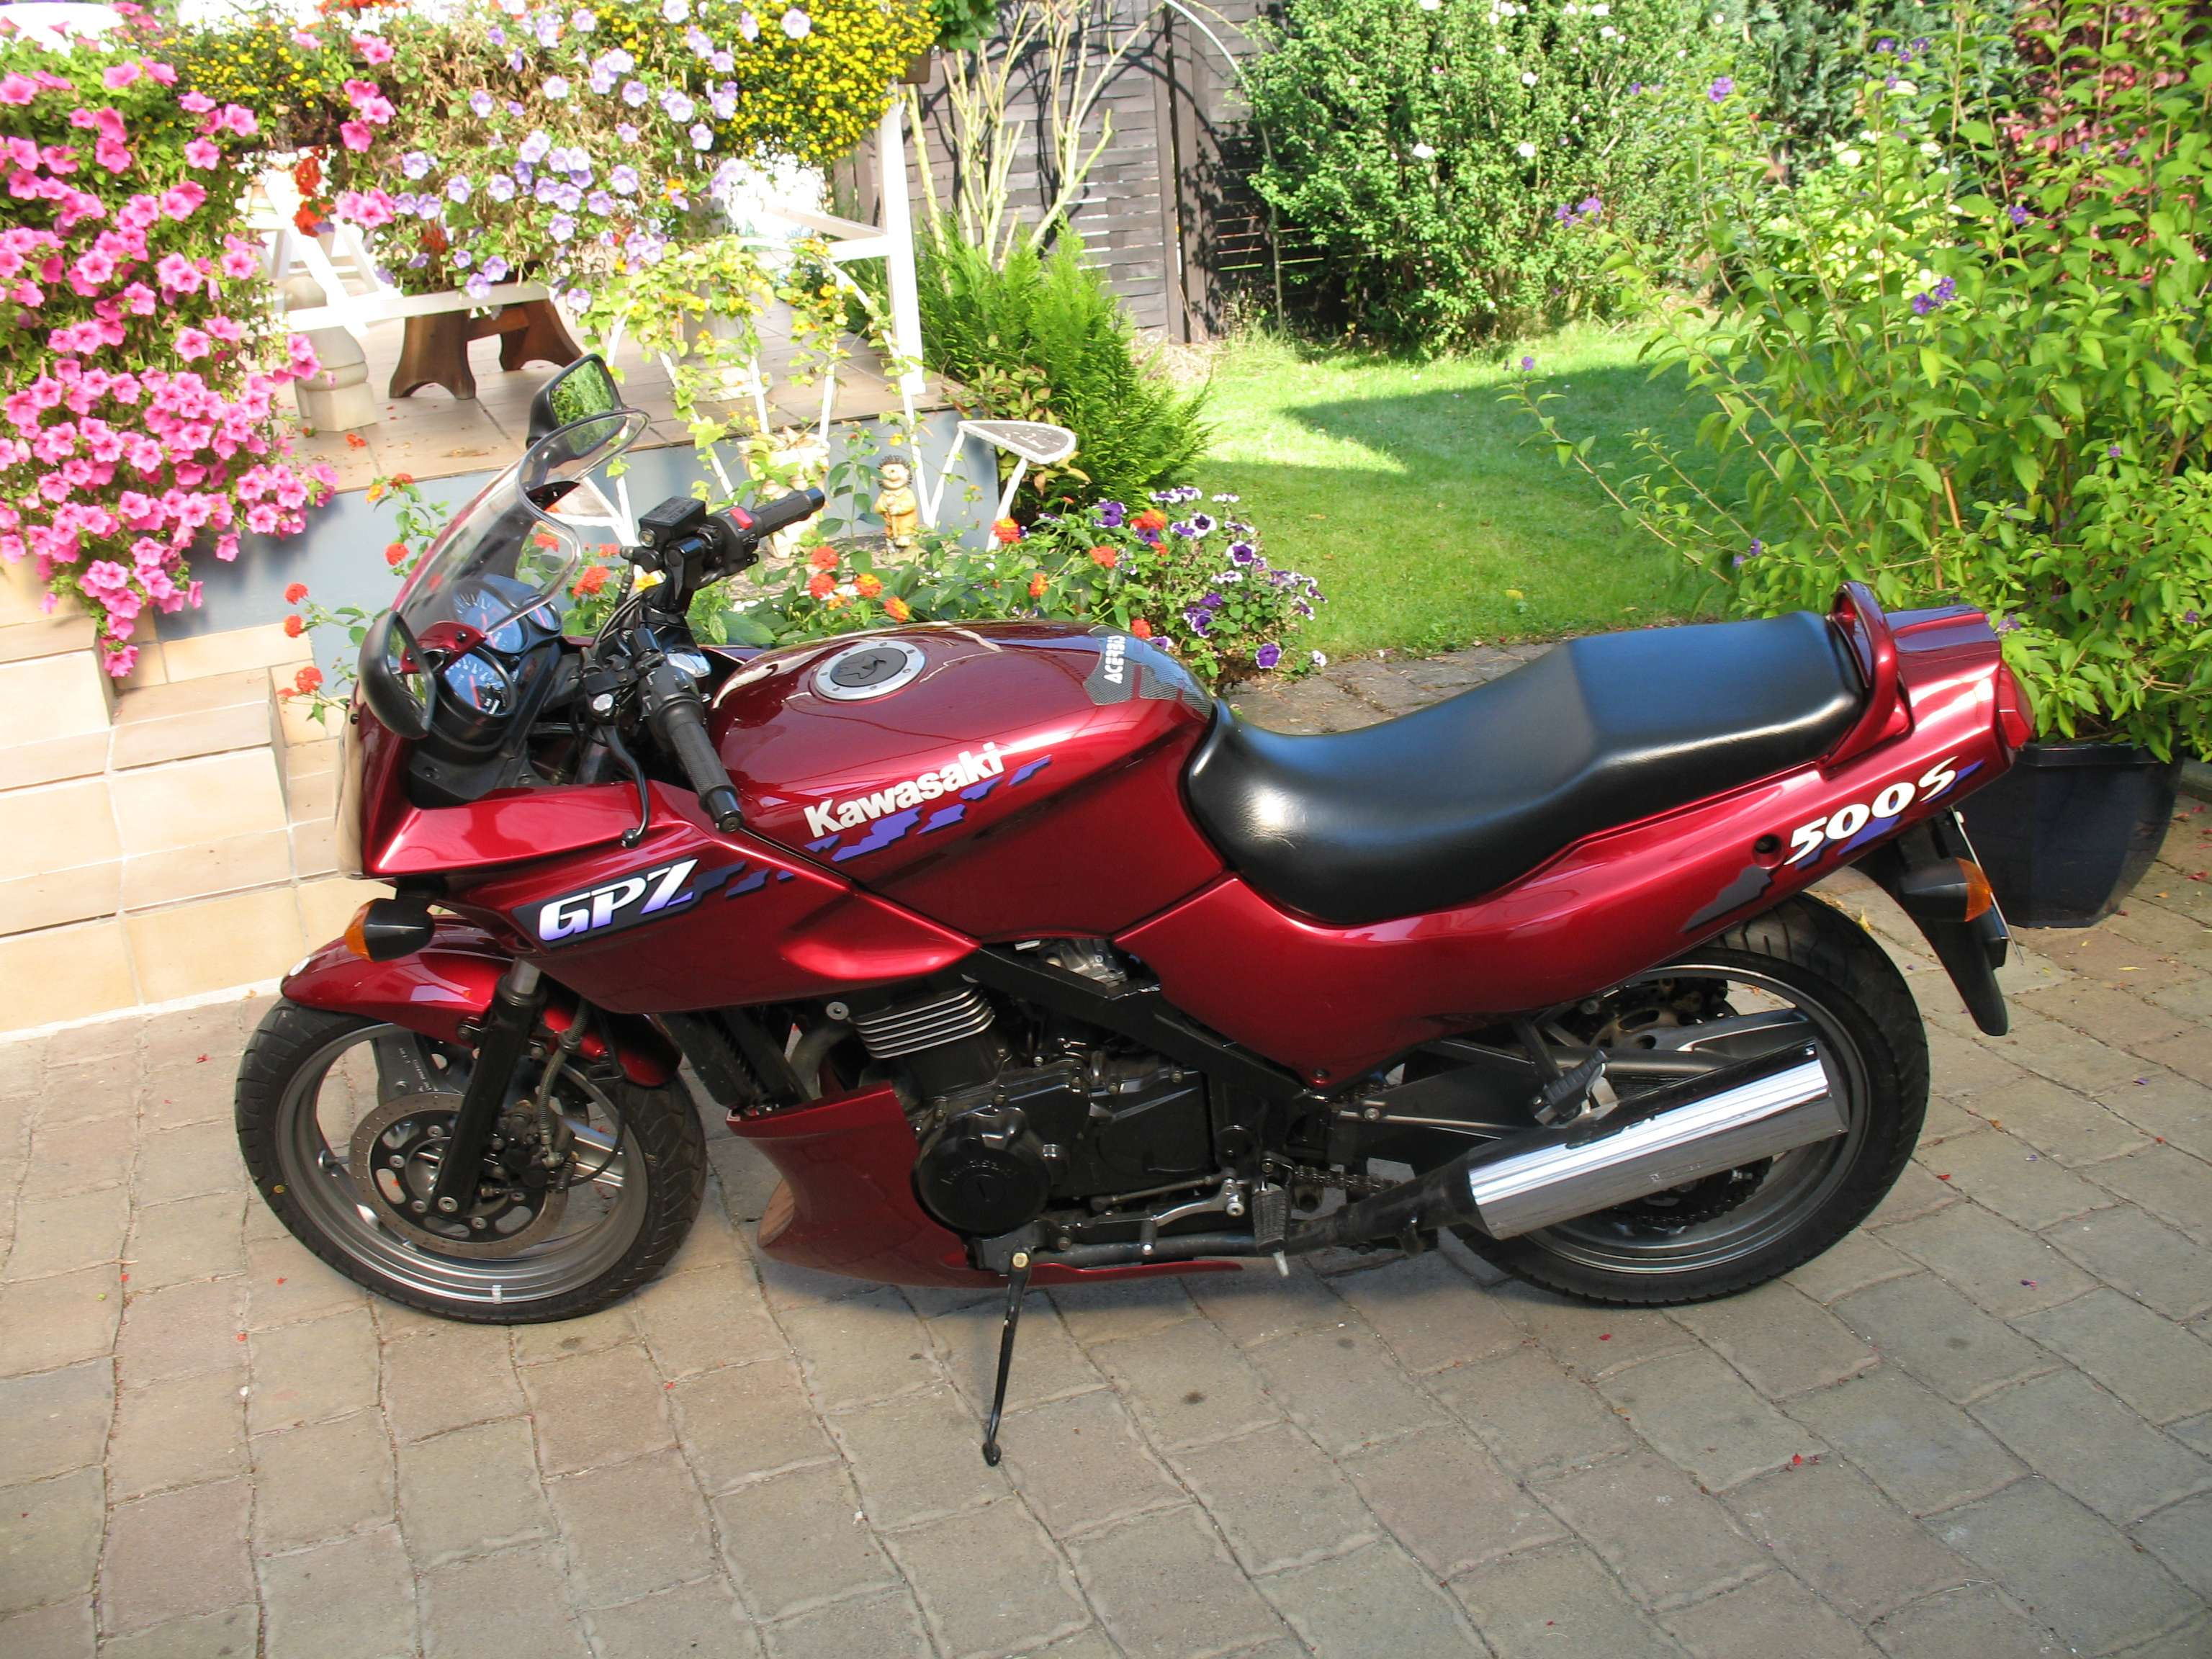 1996 Kawasaki Gpz 305 Belt Drive Pics Specs And Information 1100 Ninja Wiring Diagram 32994